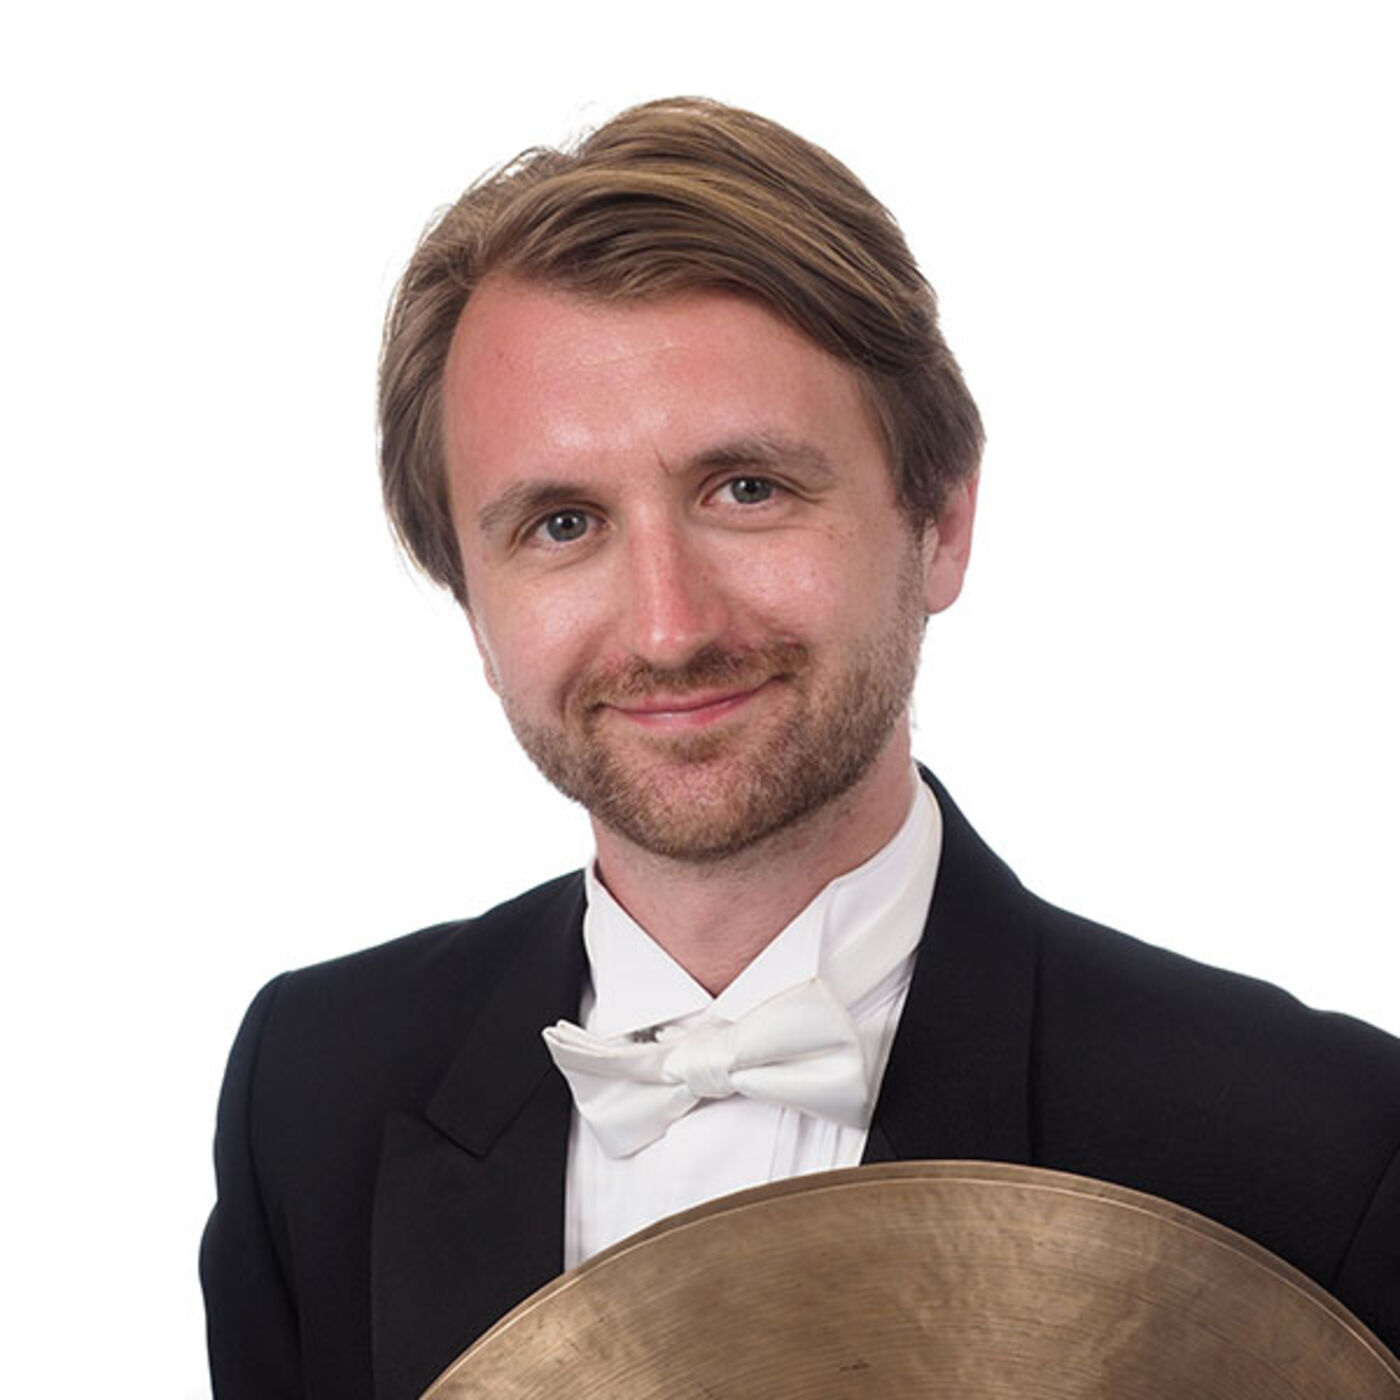 Tomasz Kowalczyk, Acting Principal Percussionist of the Sarasota Orchestra and SCF Percussion Instructor, Joins the Club